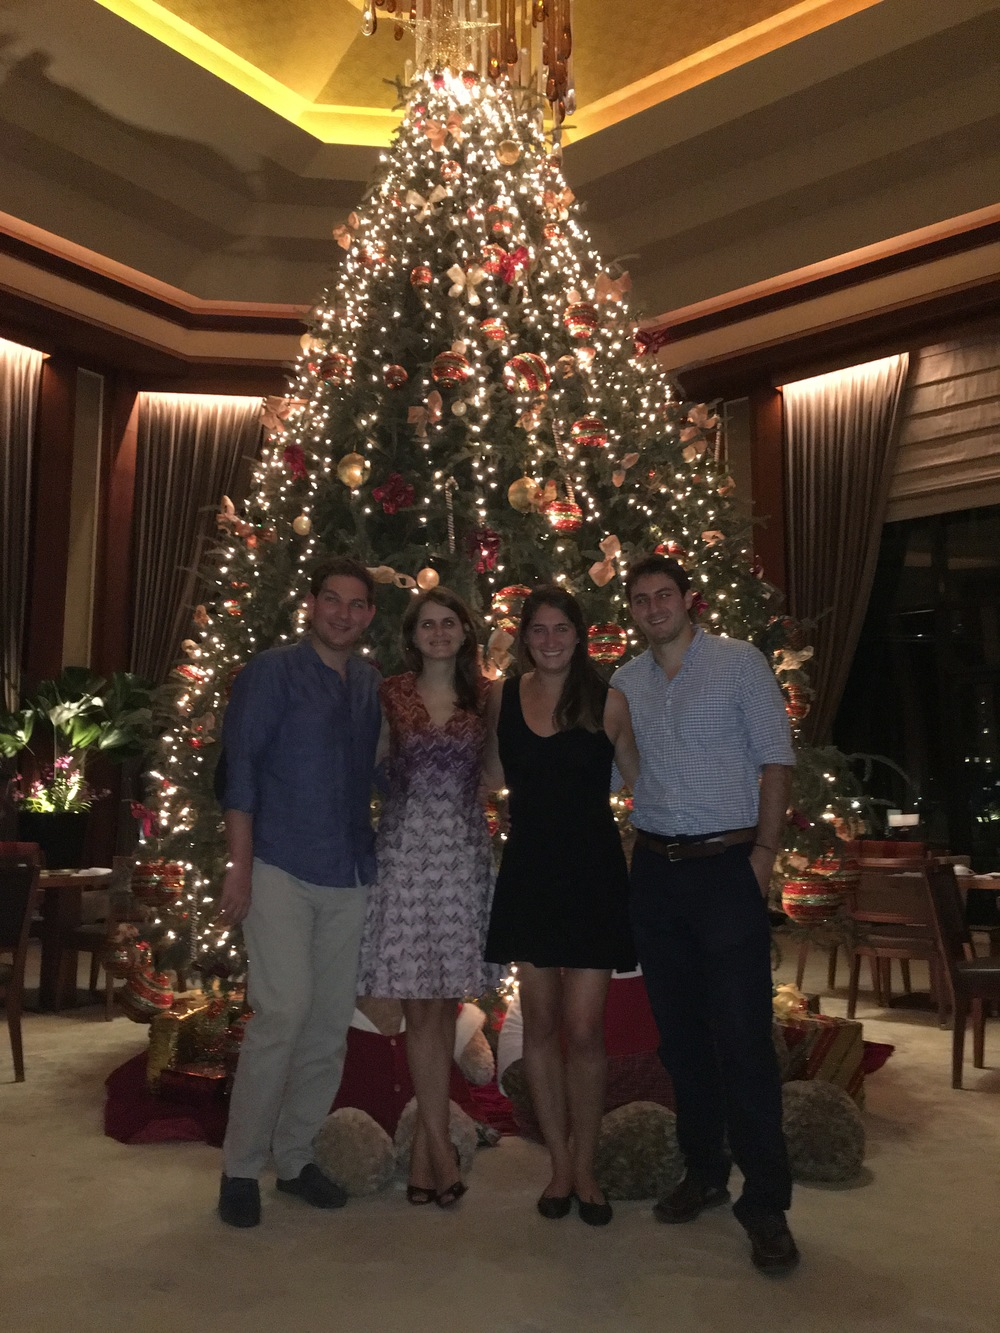 Christmastime at the Peninsula with Phil + Lucy!